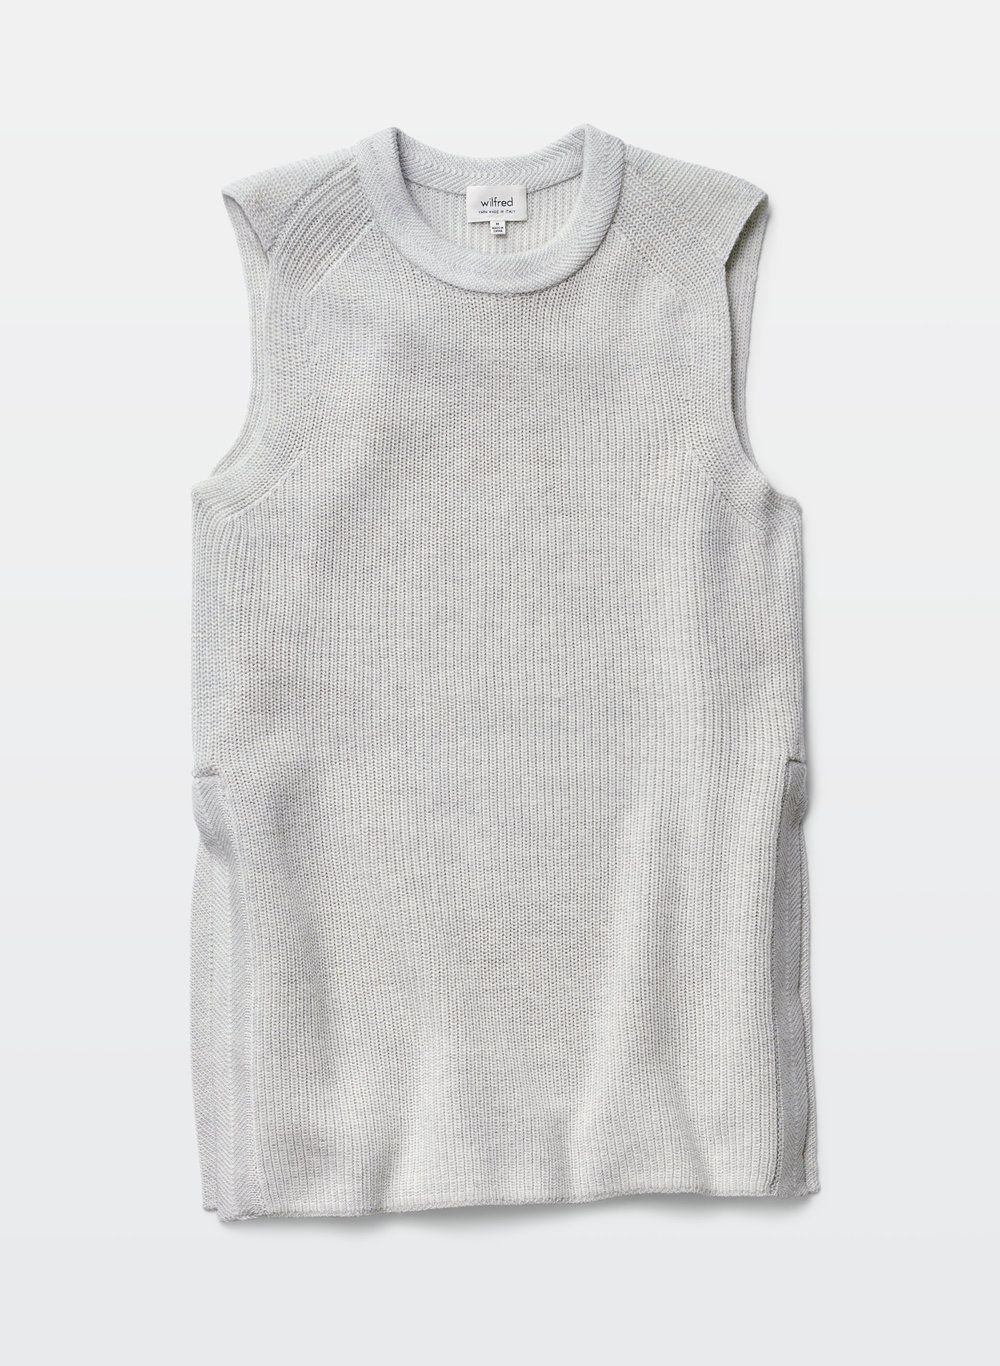 sleeveless sweater.jpg